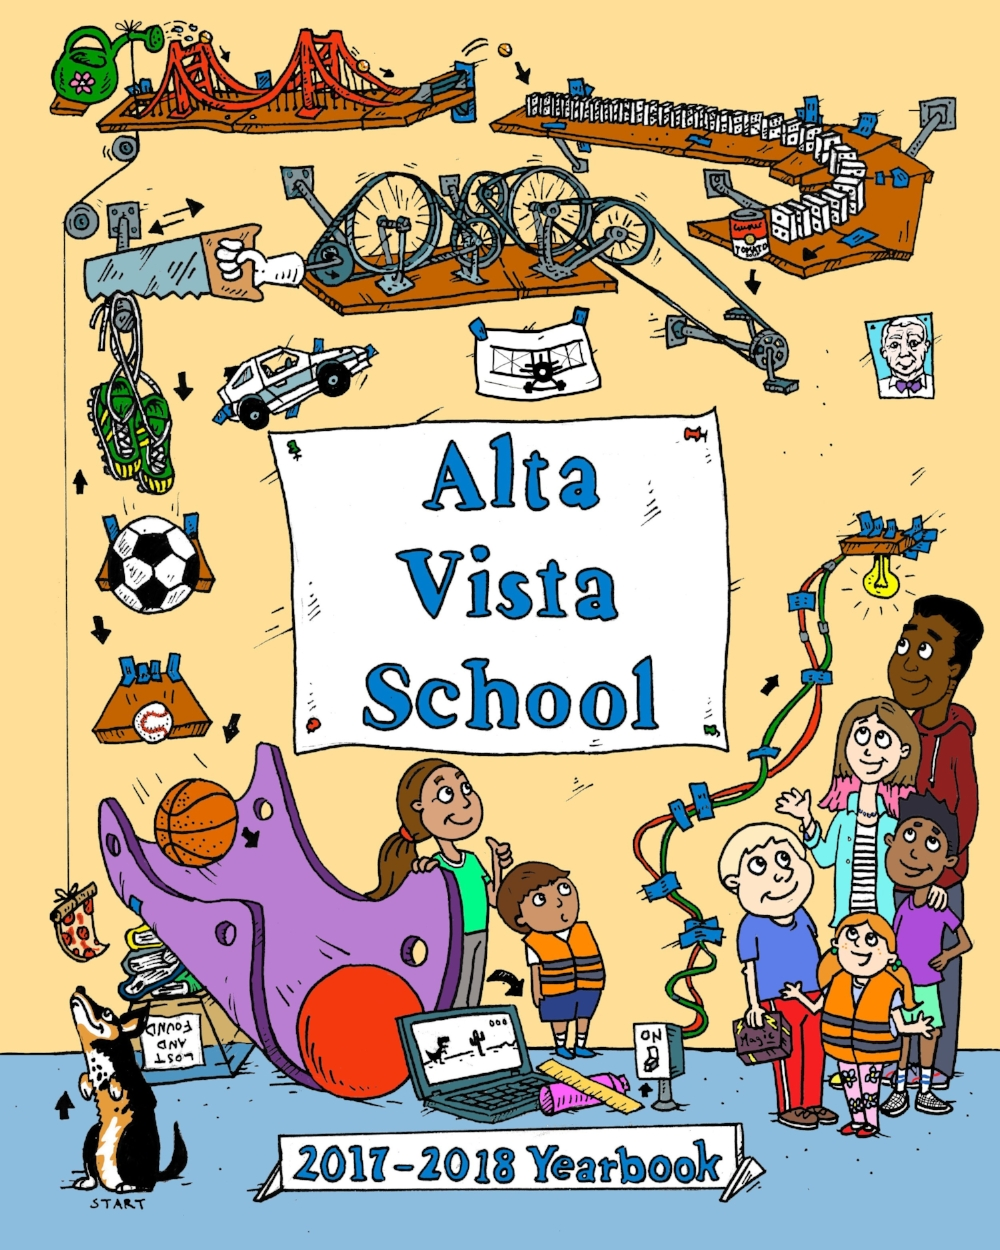 Yearbook Cover - Patrick got to draw the cover for Alta Vista School's 2017/2018 yearbook. The drawing is of a Rube Goldberg machine that contains elements that represent the lower and middle school. The student-run yearbook committee gets credit for the cover idea. Patrick just drew it!